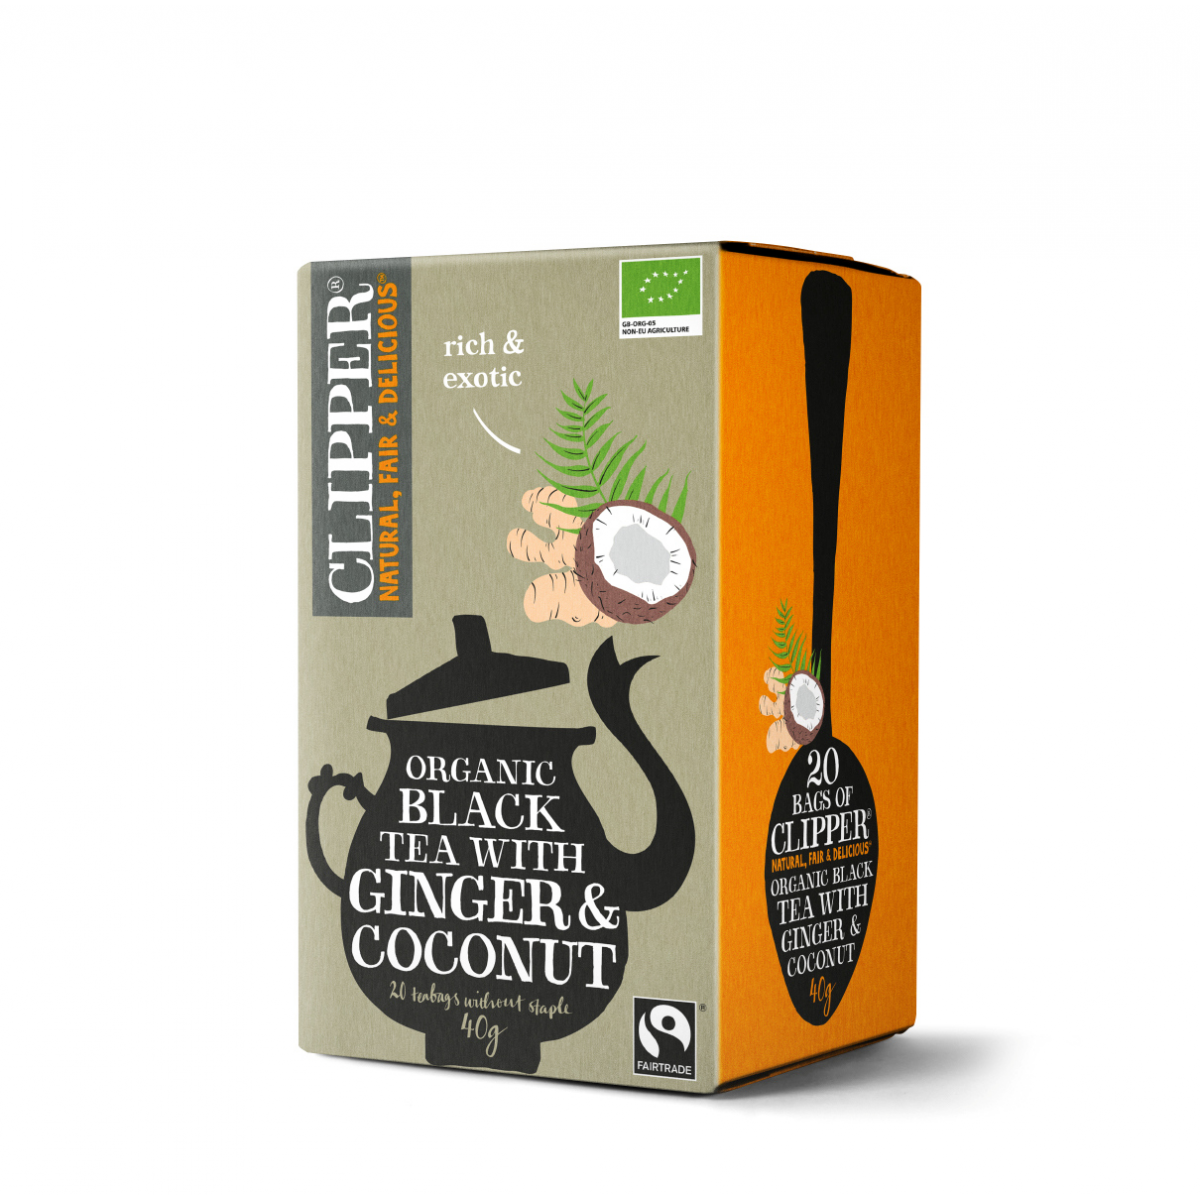 Thee Clipper black tea ginger & coconut pakje